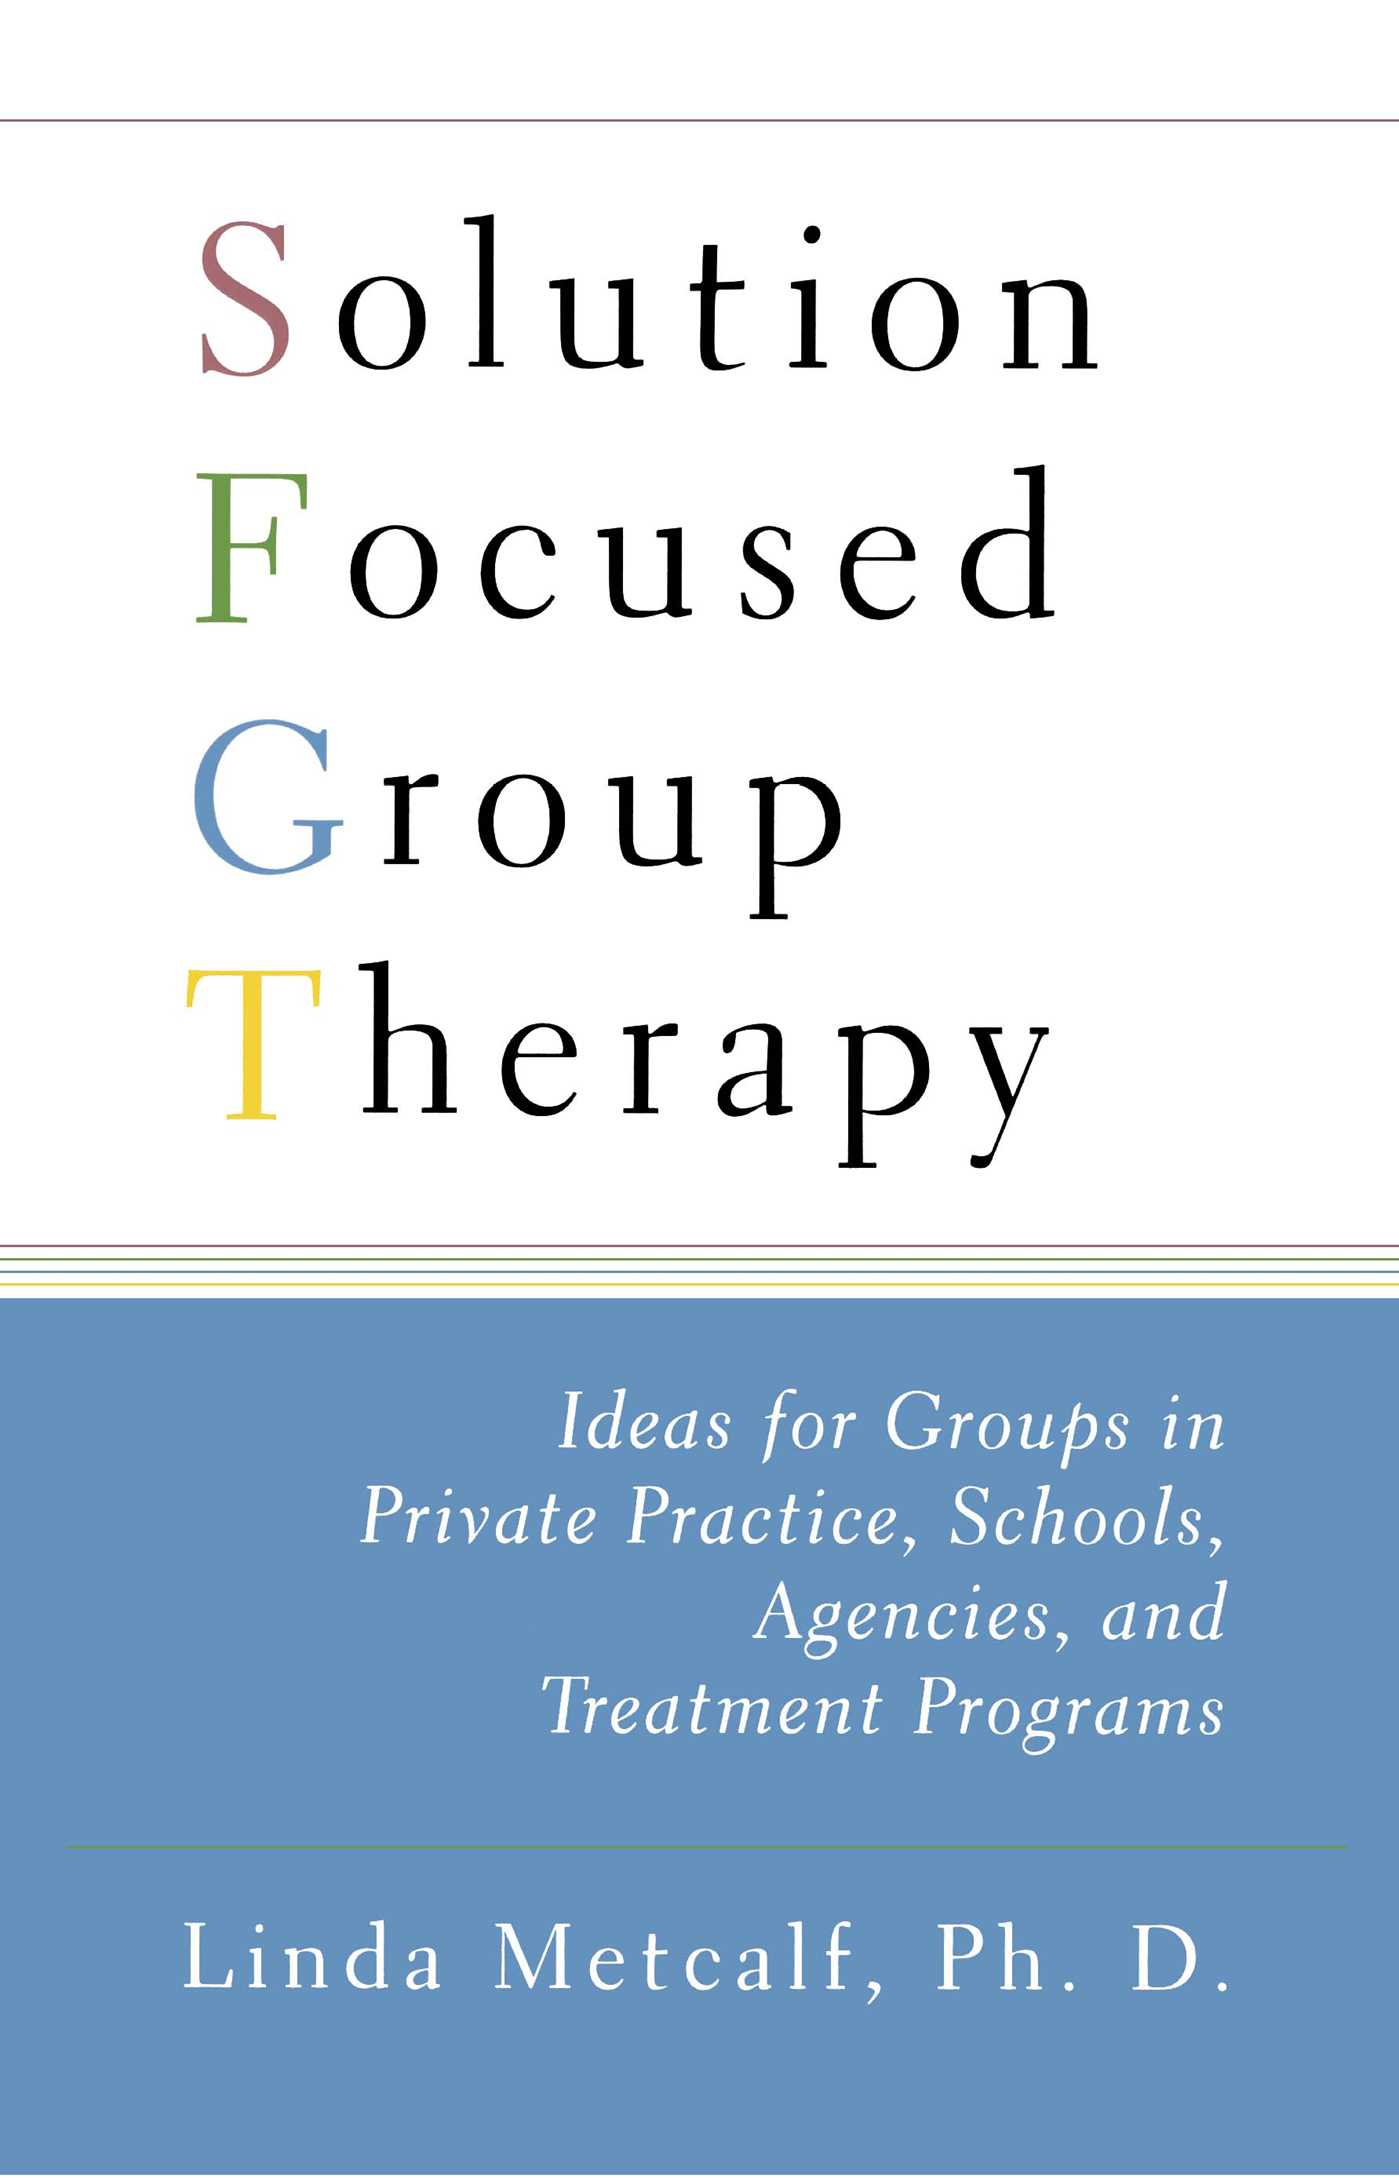 Solution focused group therapy 9781416584643 hr